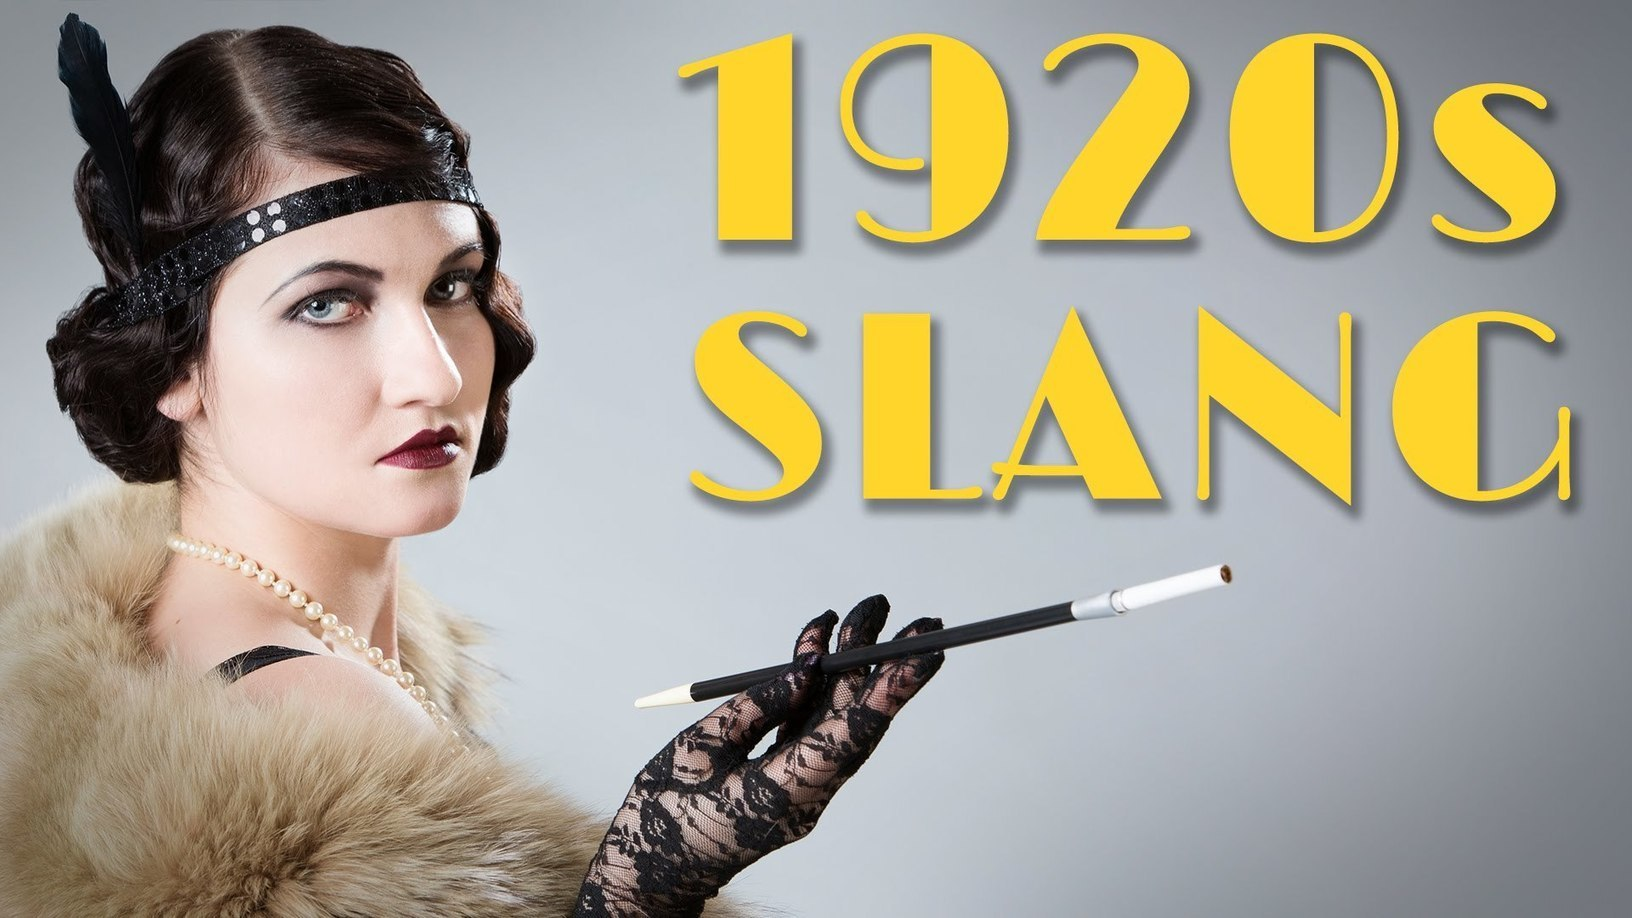 1920 s slang Slang of the 1920's the twenties were the first decade to emphasize youth culture over the older generations, and the flapper sub-culture had a tremendous influence on main stream america many new words and phrases were coined by these liberated women.